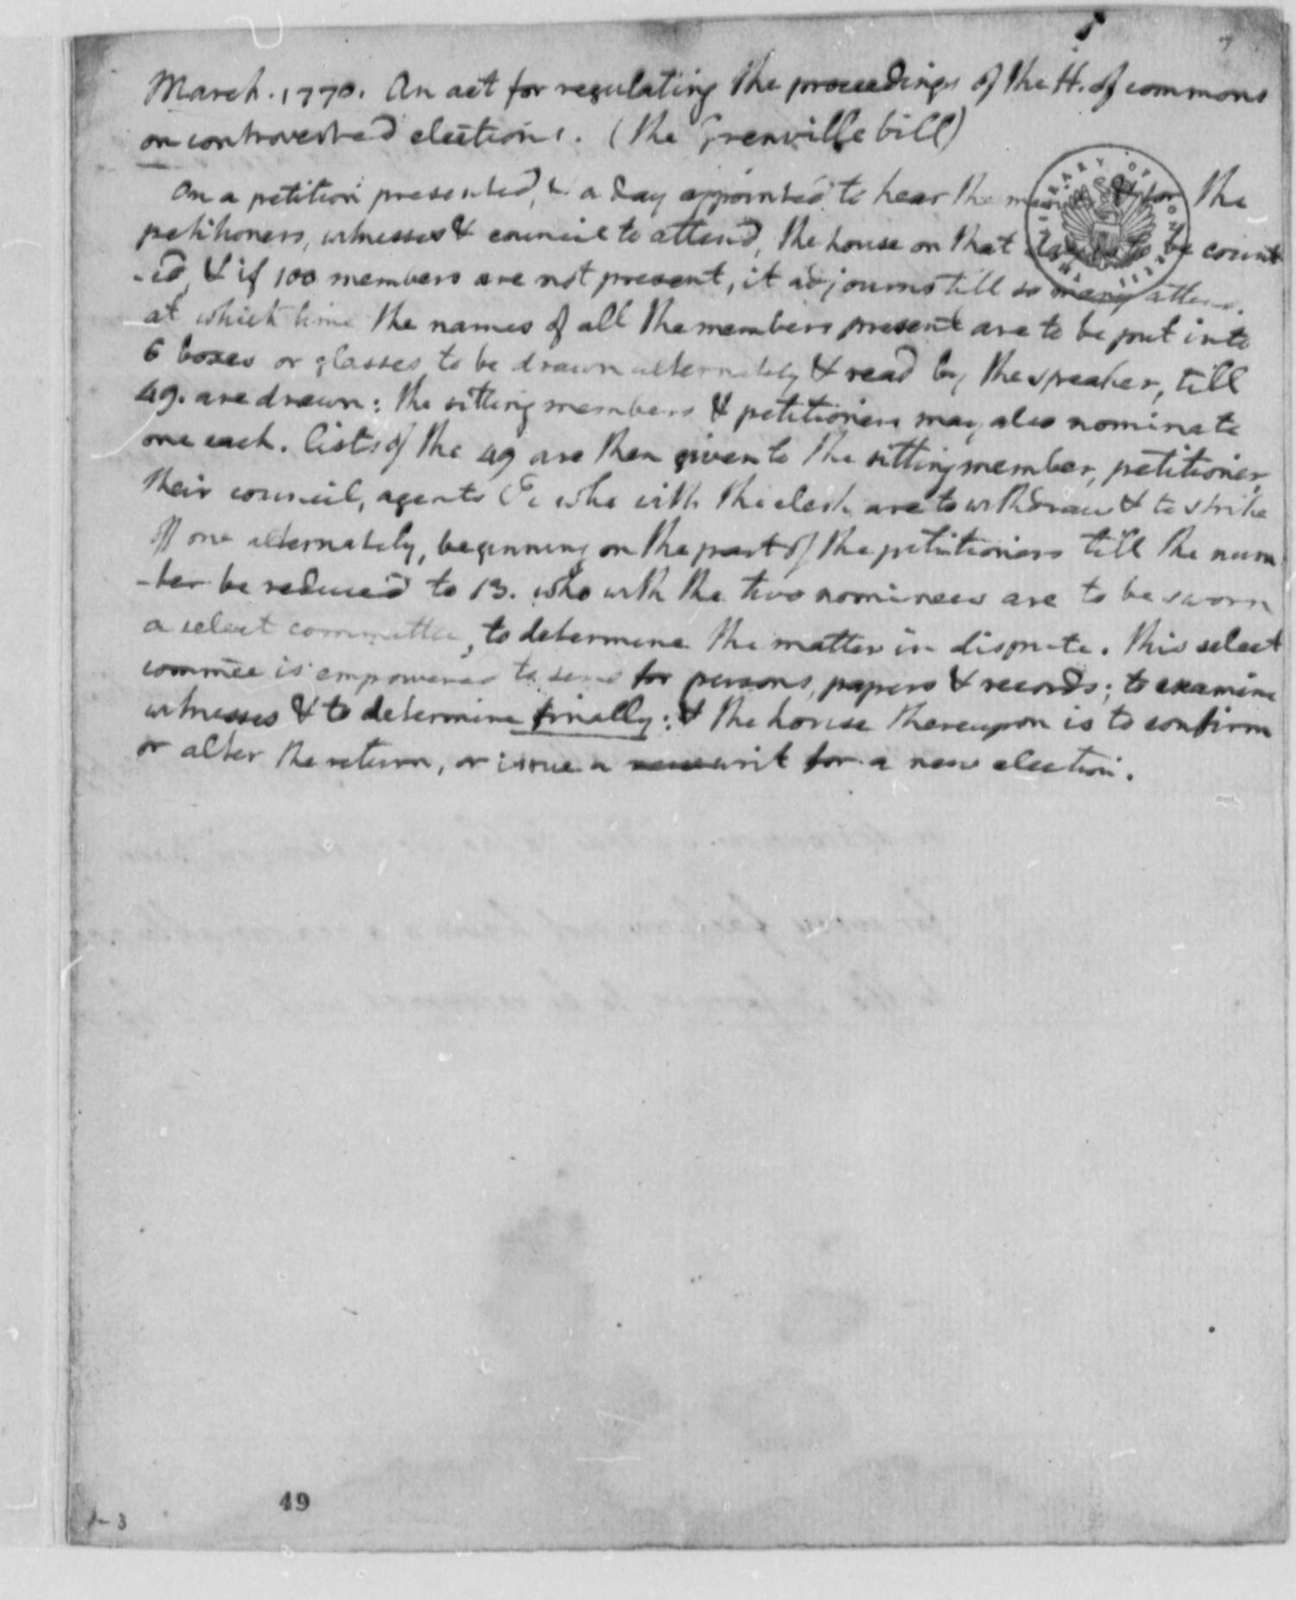 House of Commons, March 1770, Notes on Grenville Bill; Procedures for Settling Disputed Elections